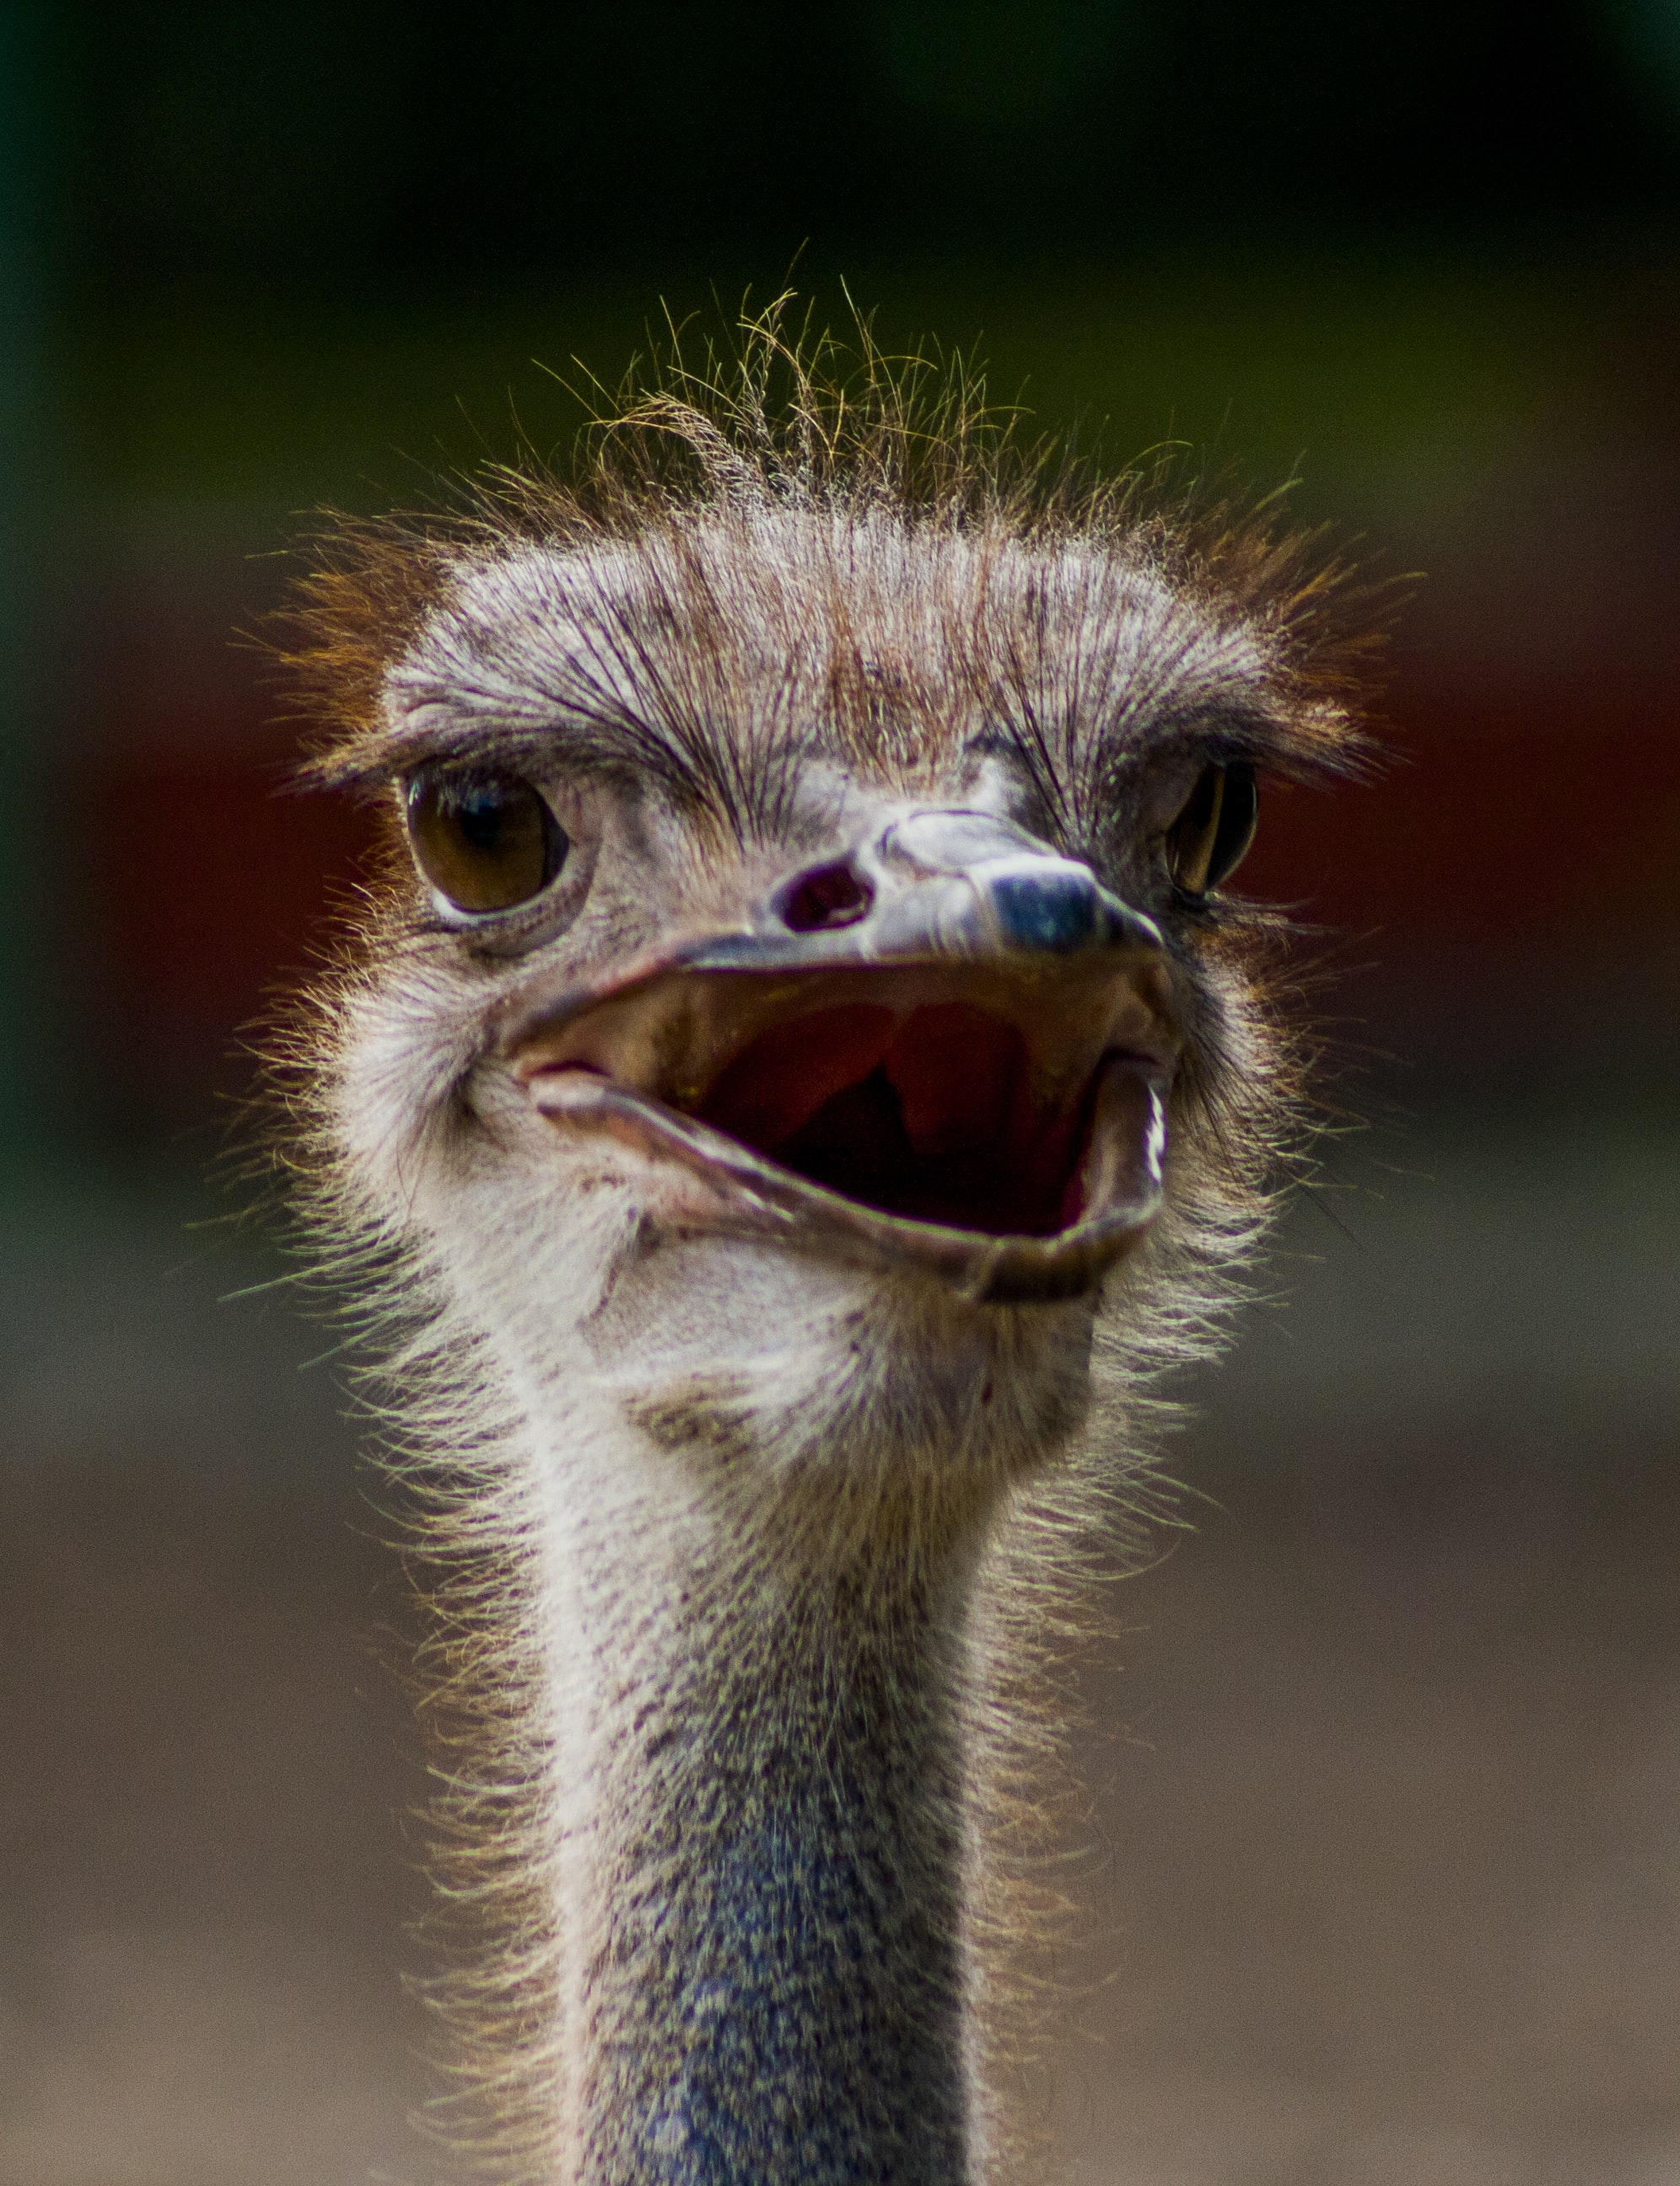 close-up photography of ostrich head